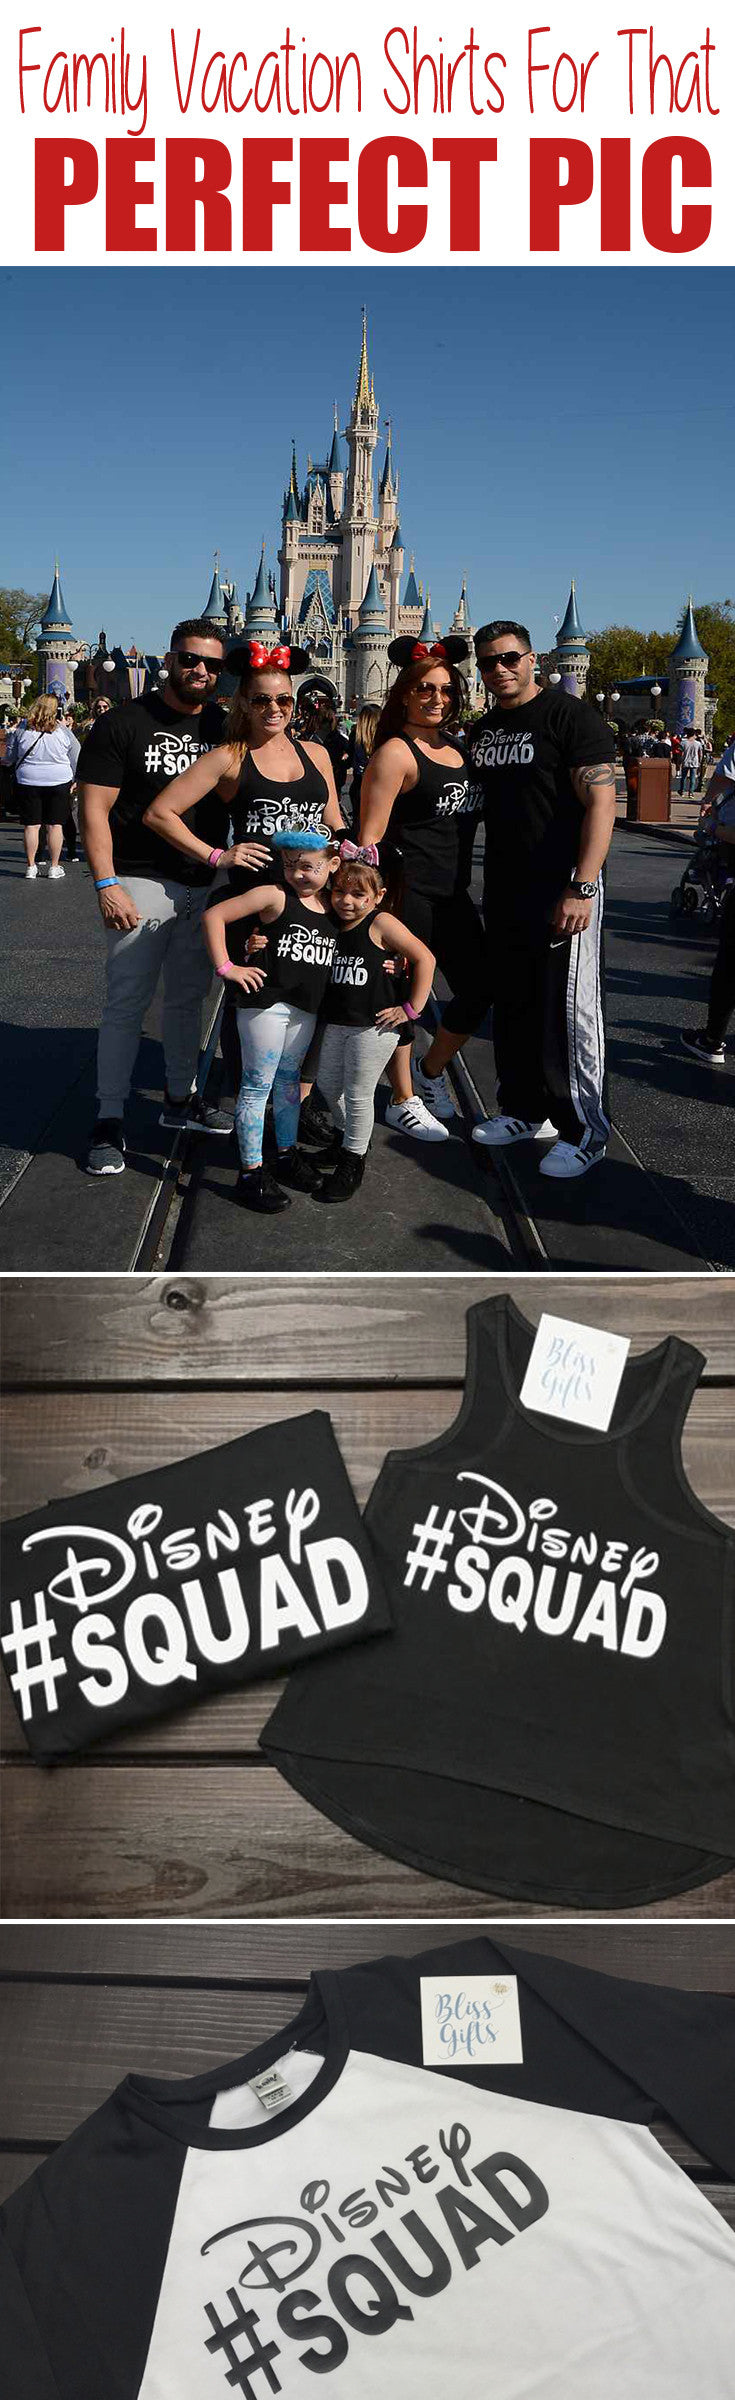 Matching Group Family Vacation Shirts For Disney #Disney Squad